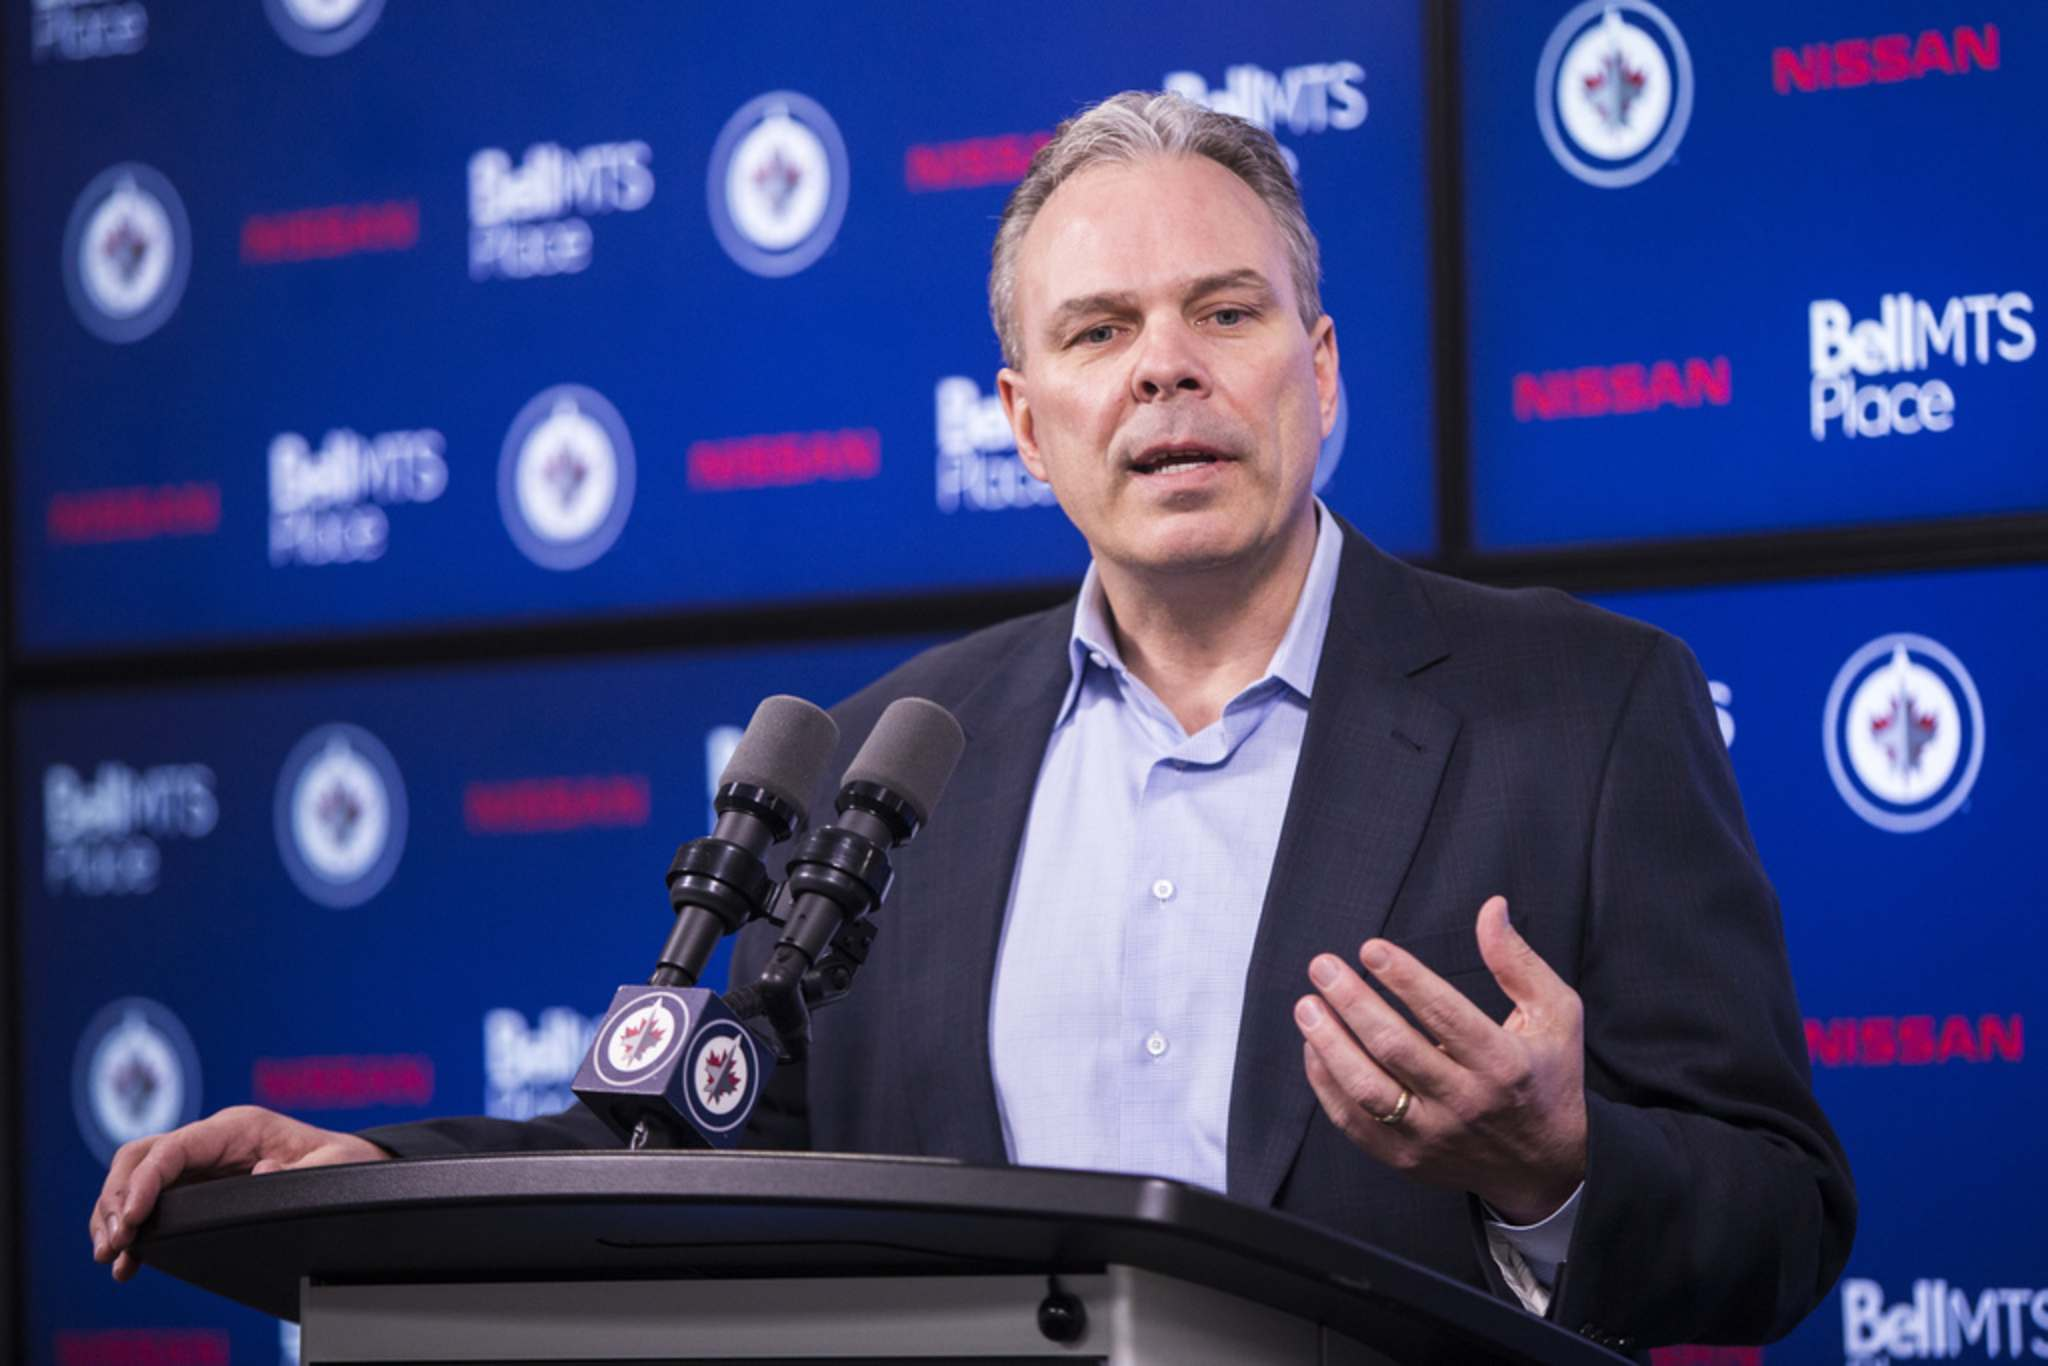 """""""We will await further instructions on possible return to play protocols from the National Hockey League,"""" Winnipeg Jets GM Kevin Cheveldayoff said in a statement."""